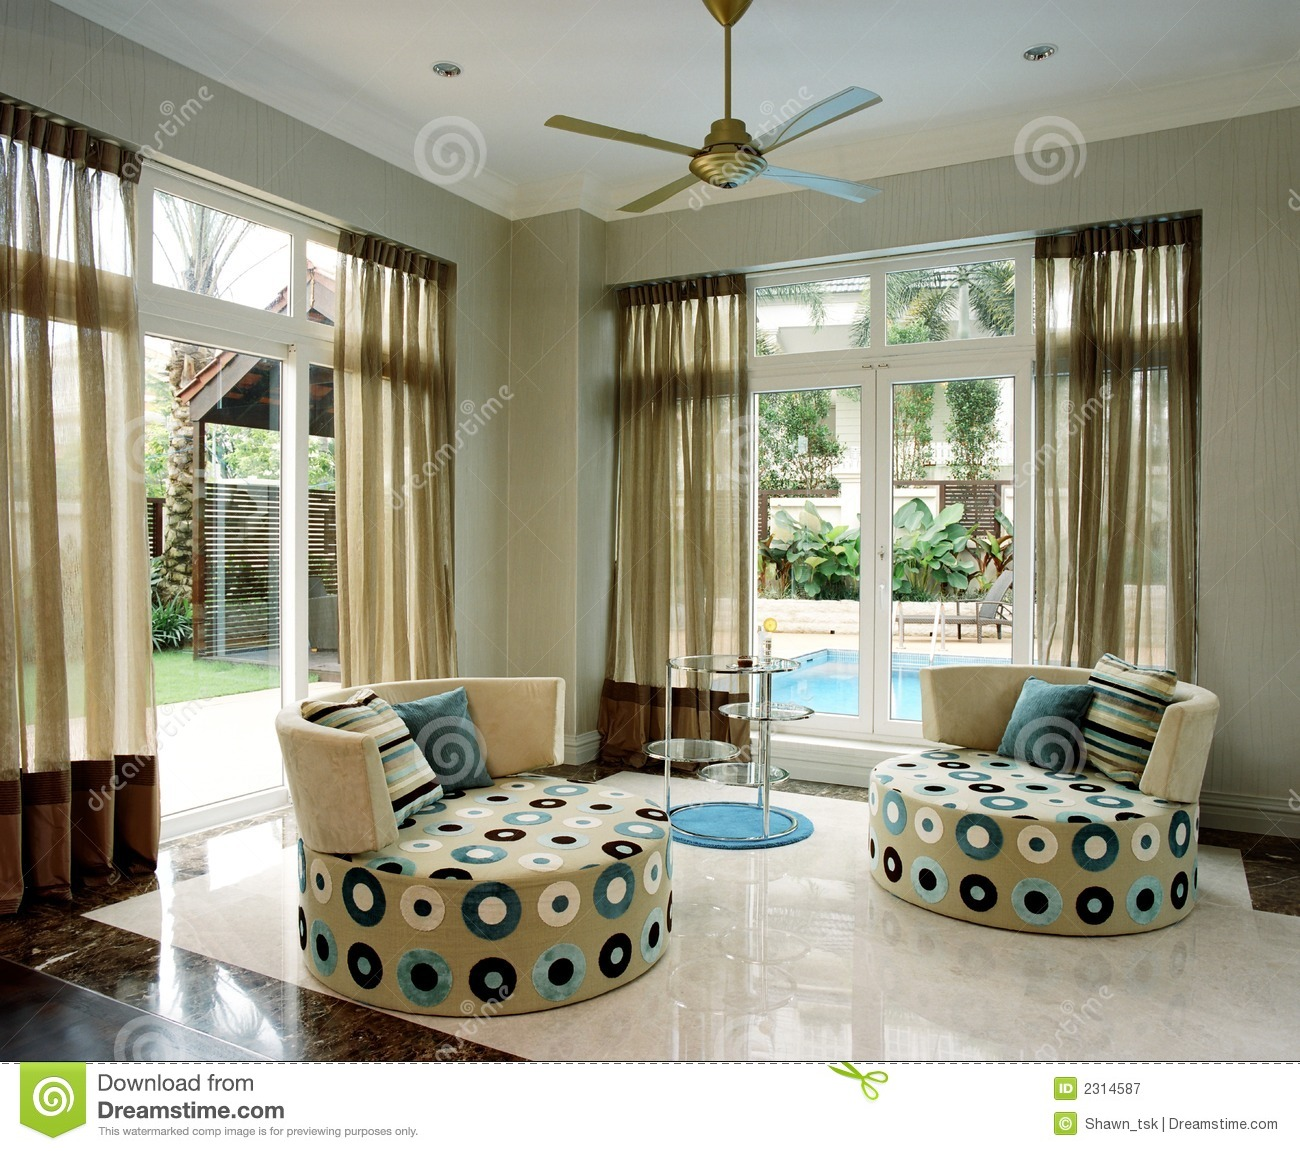 Interior Design Royalty Free Stock Photos - Image: 25481298